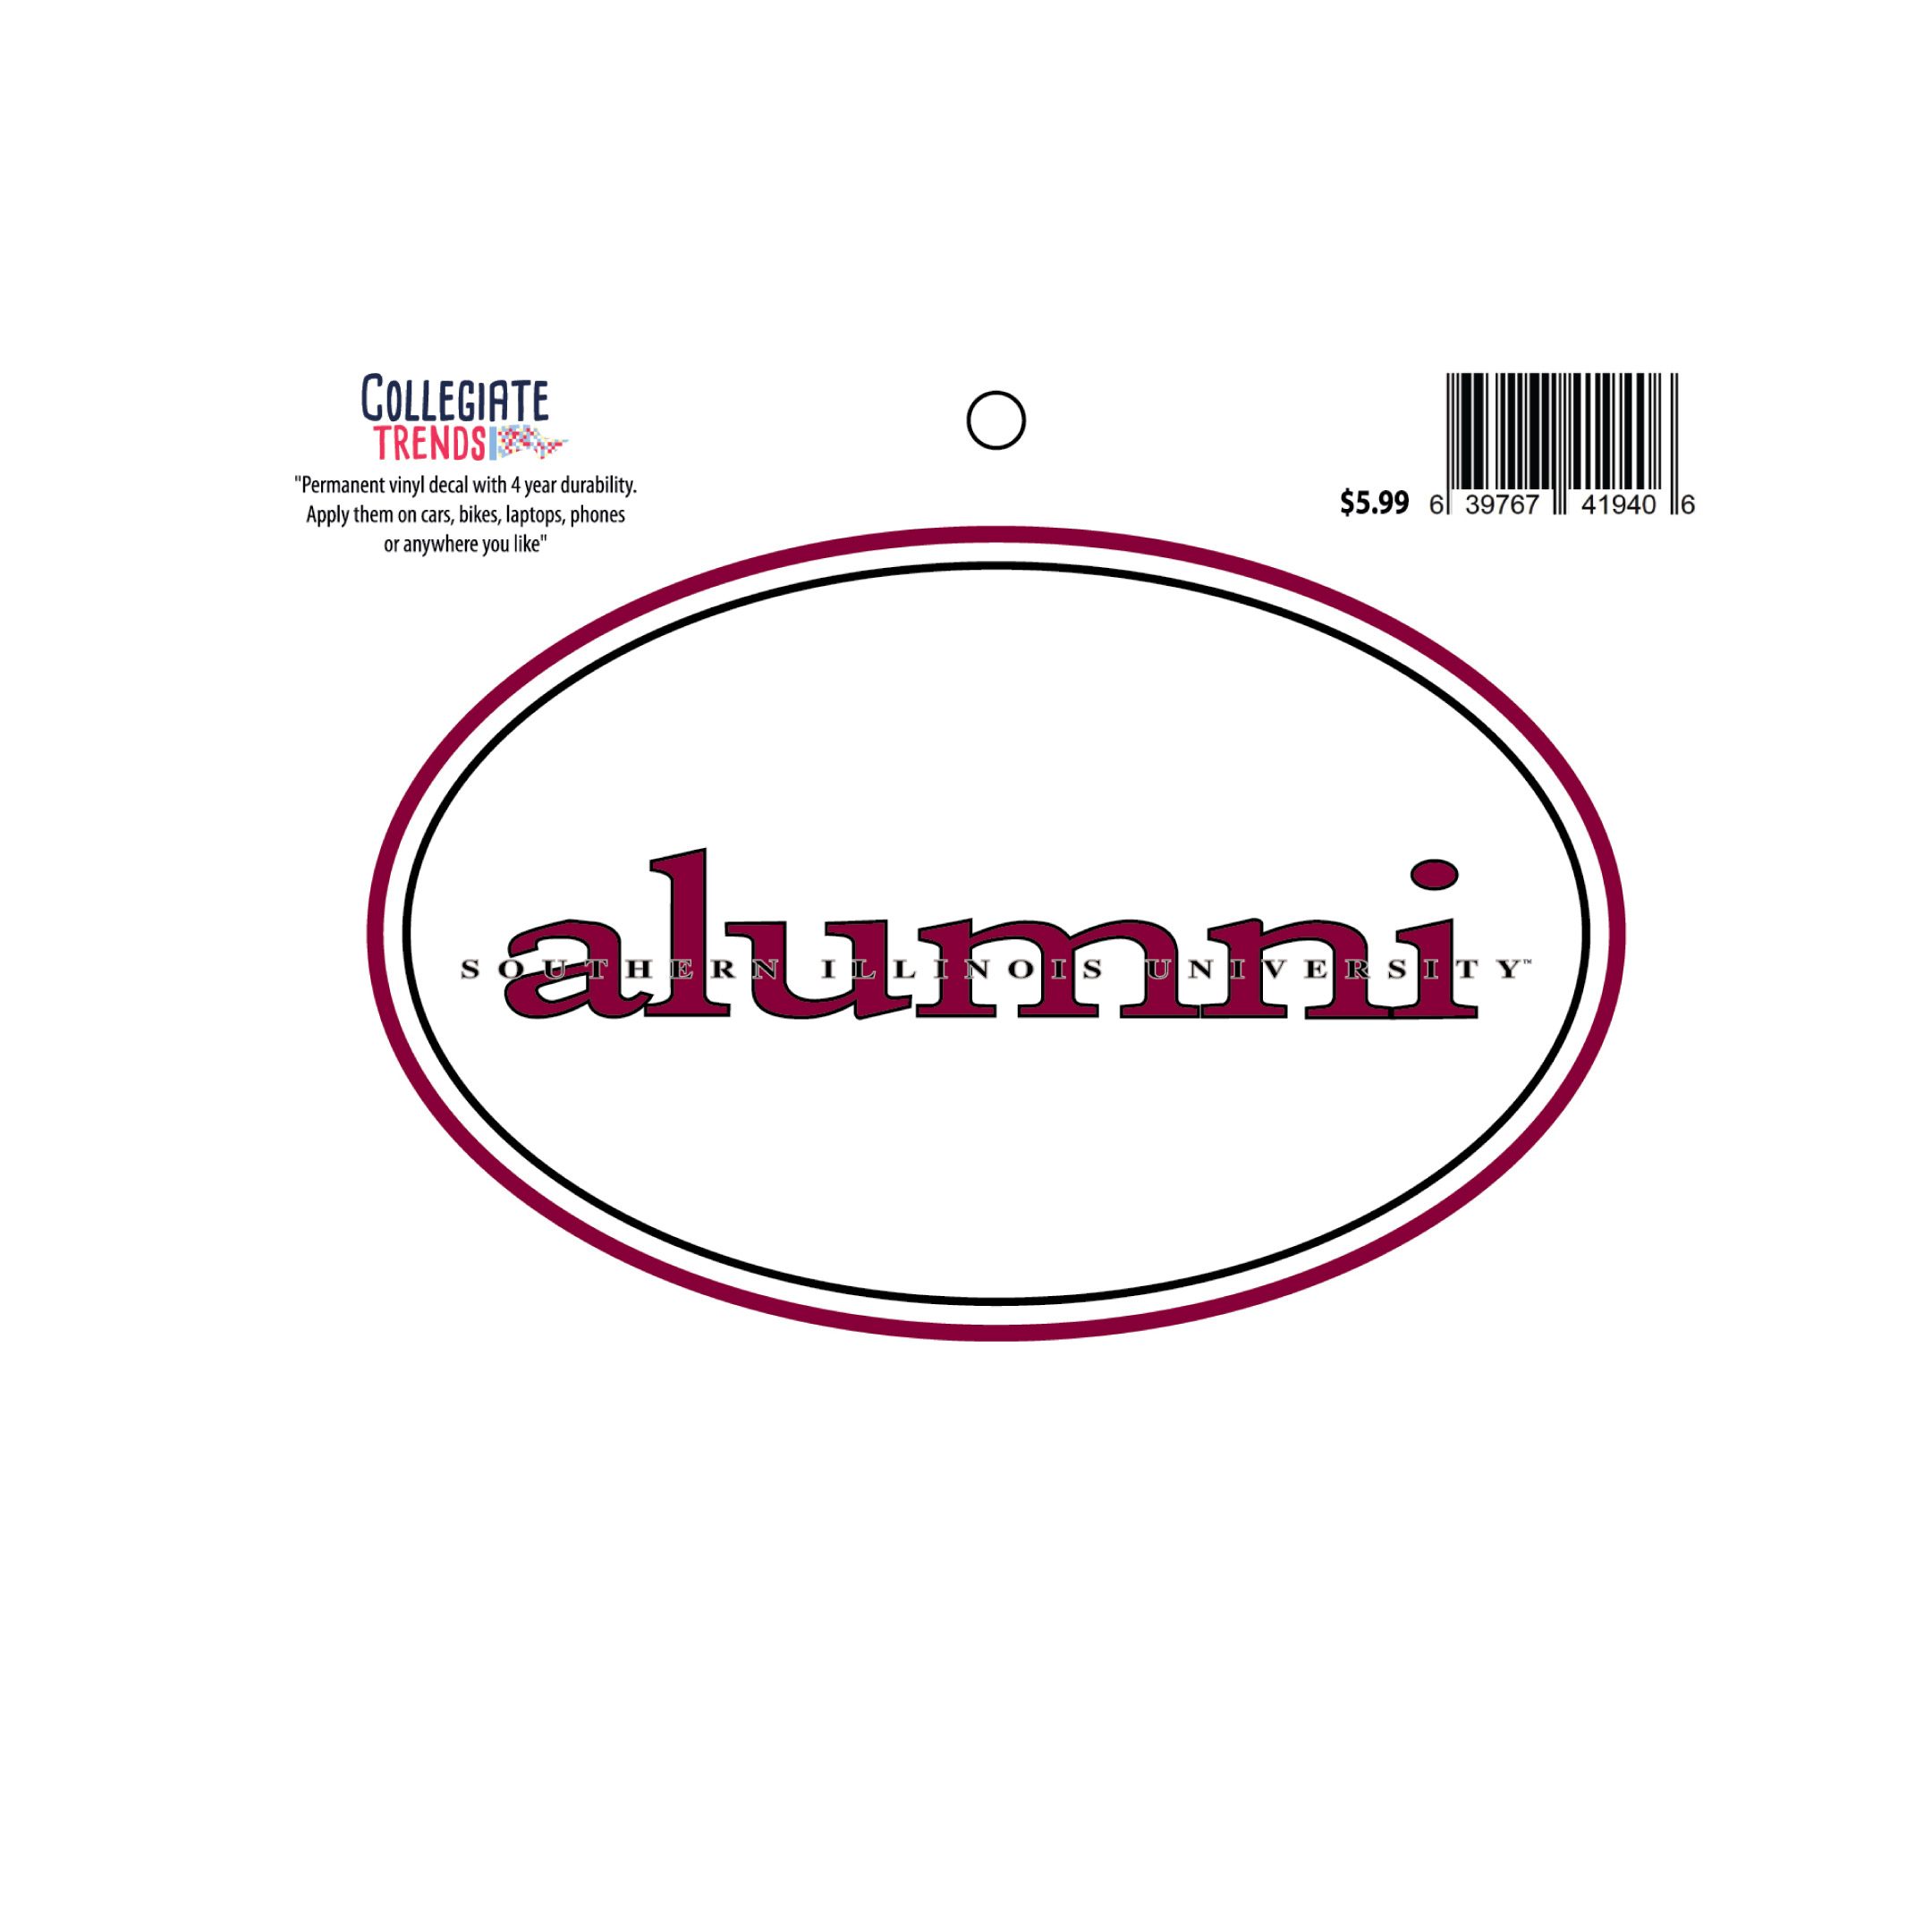 Image for the CT® SOUTHERN ILLINOIS UNIVERSITY OVAL ALUMNI DECAL product